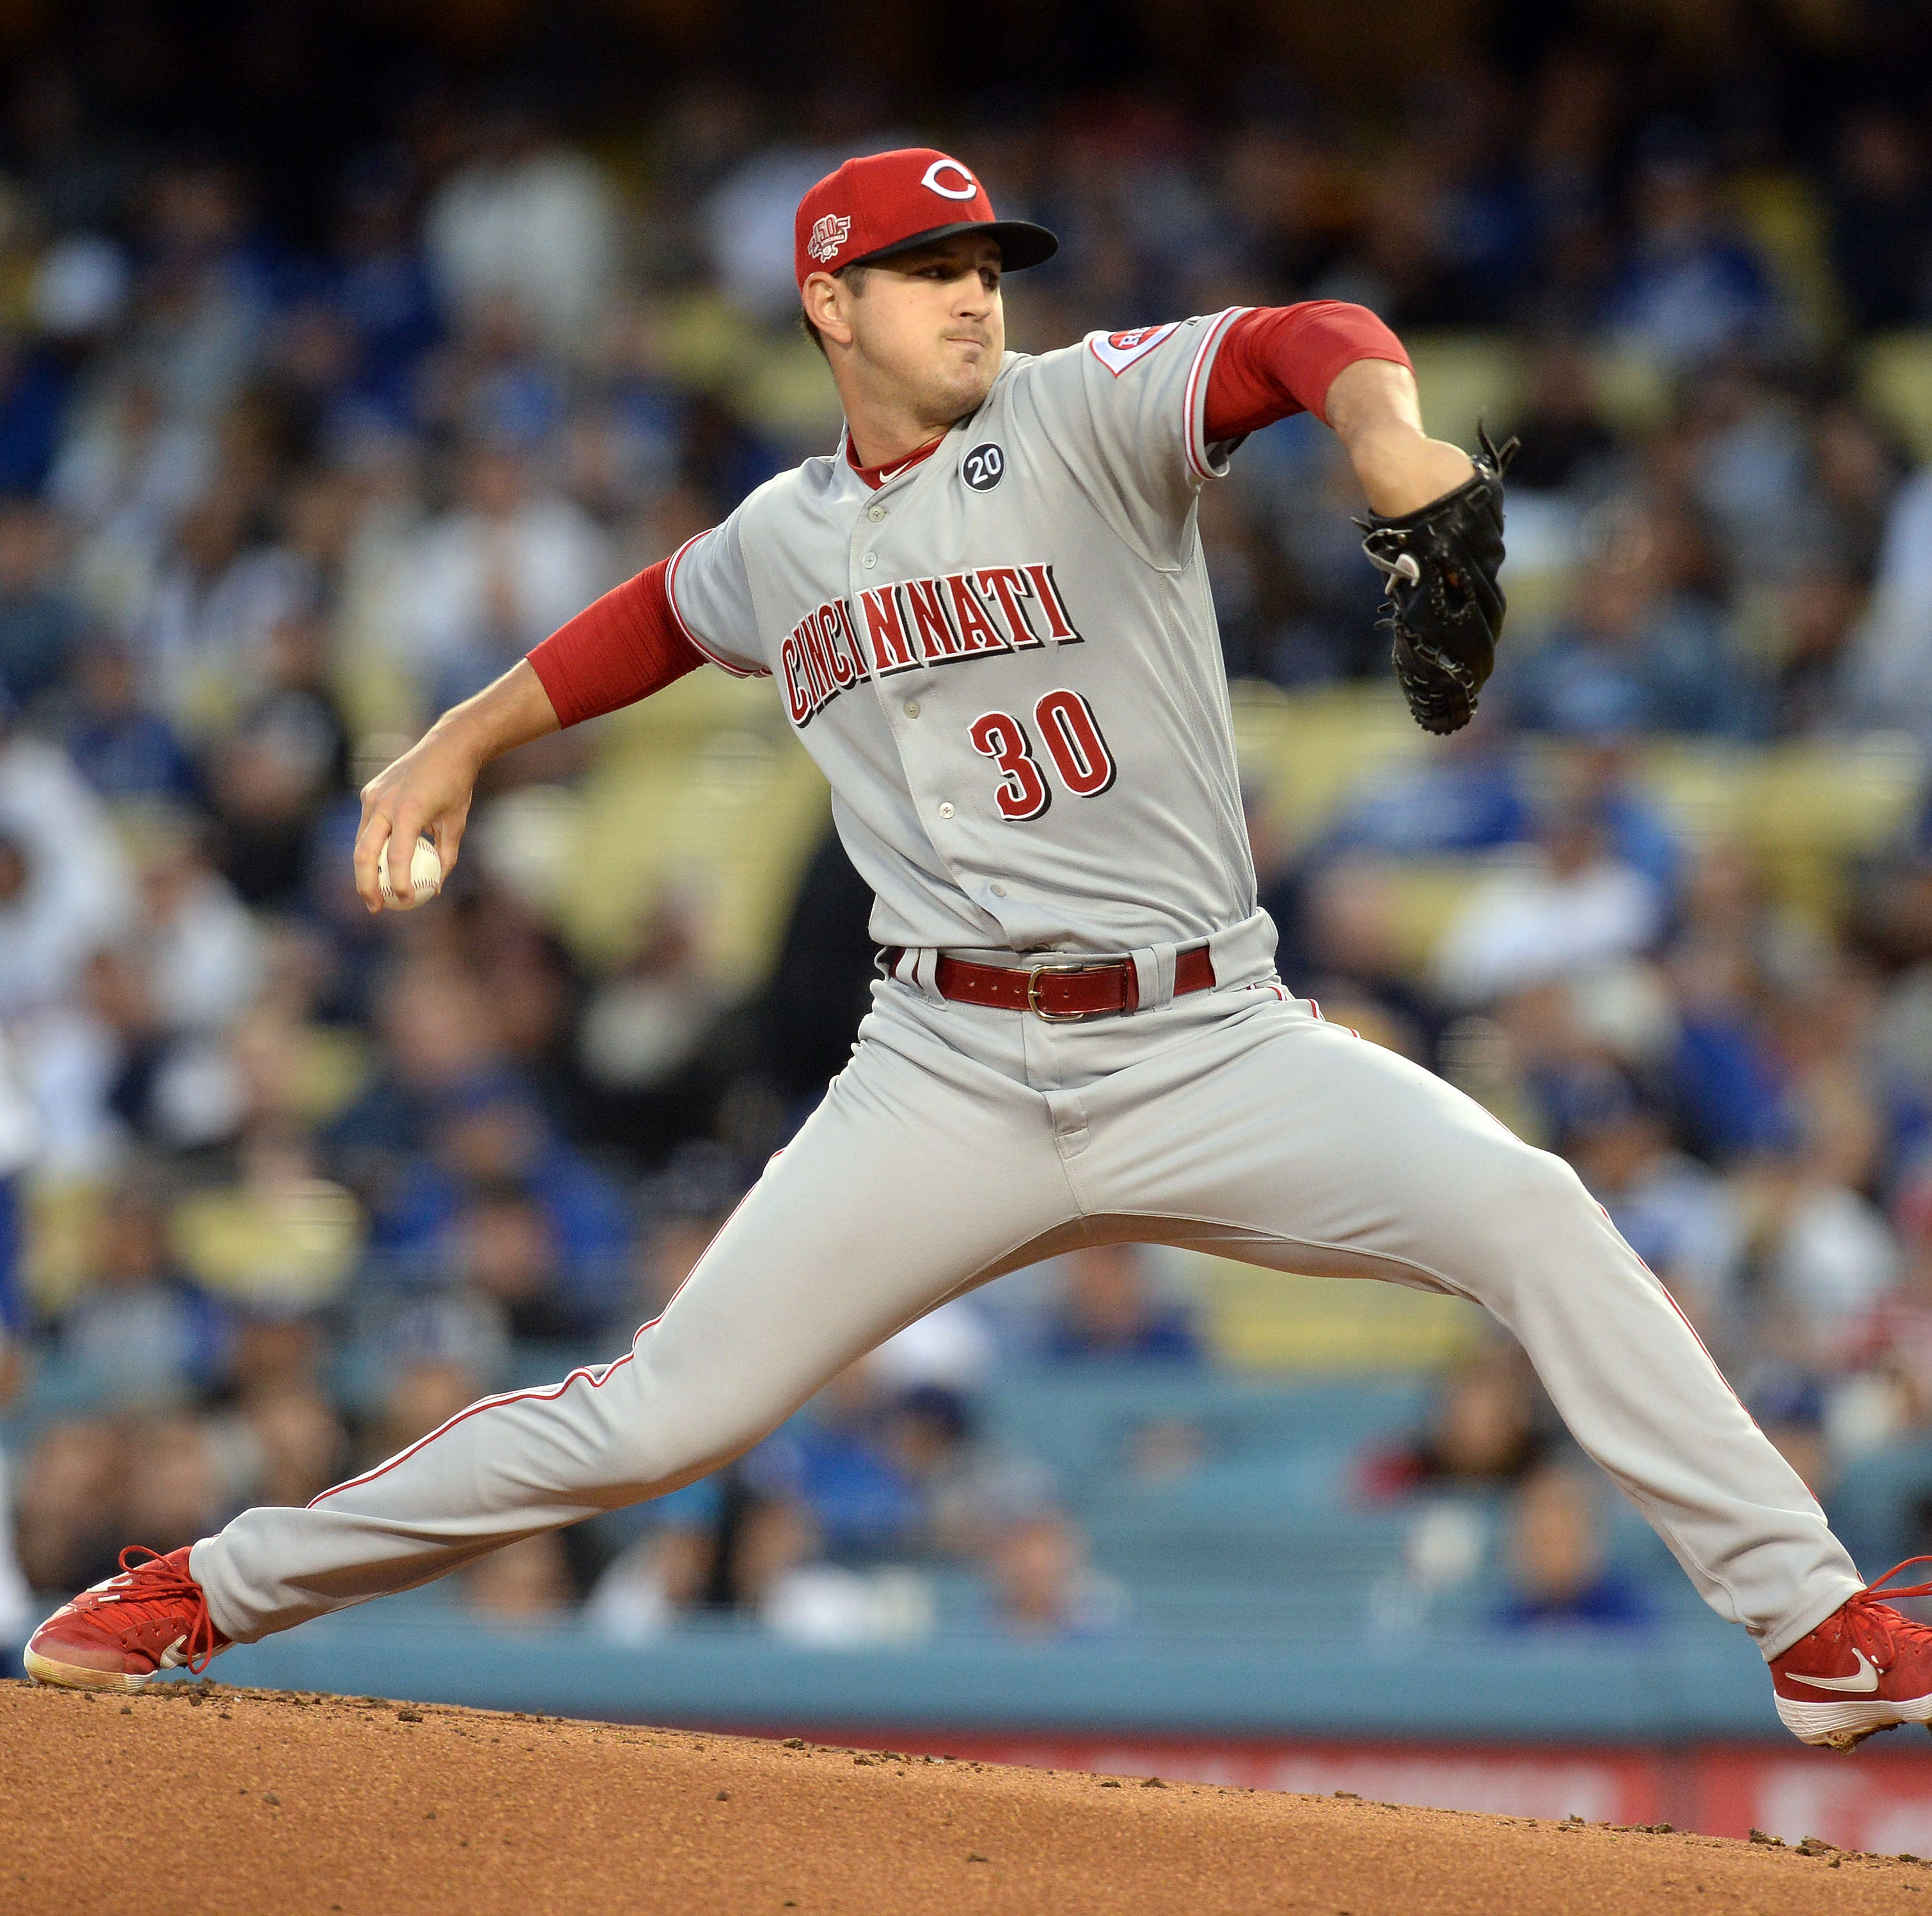 Cincinnati Reds drop their 3rd consecutive game in 6-1 loss to Los Angeles Dodgers